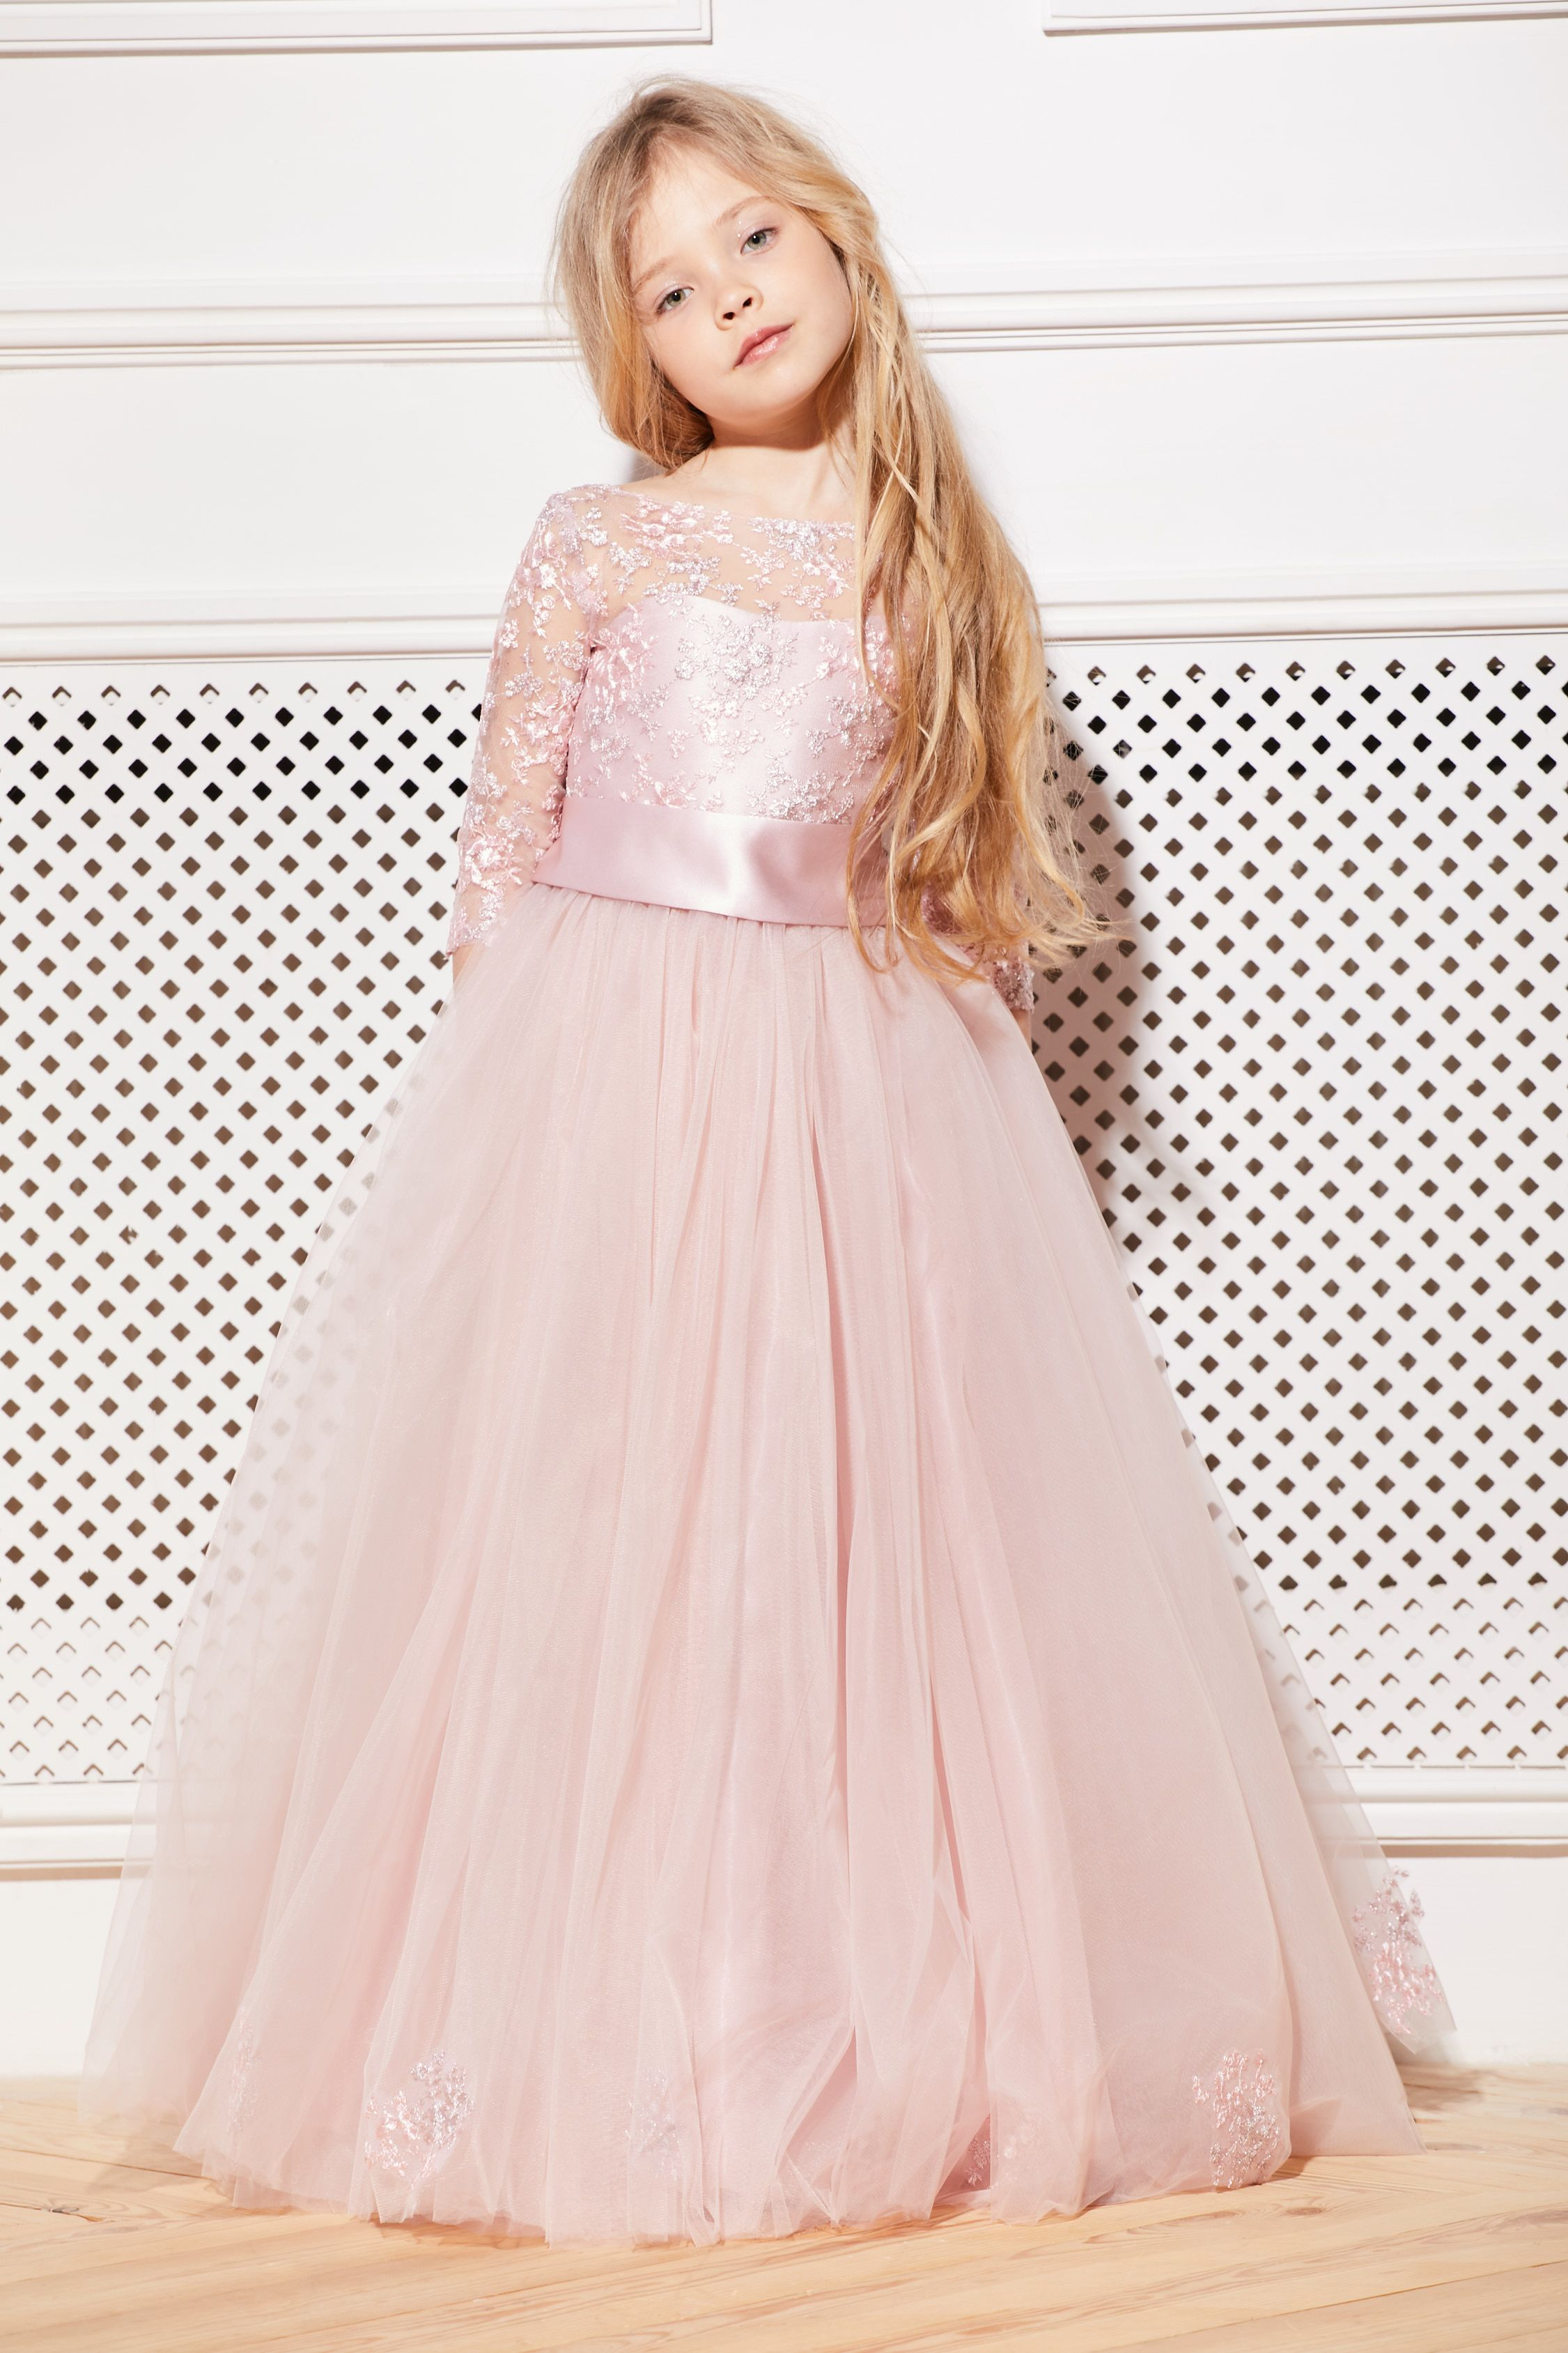 19dc892ce Blush Flower Girl Dress Cream Tulle Pink Tutu Birthday Wedding Kids Guipure  Rose Lace Satin Junior Bridesmaid Ballerina Baby Formal Party